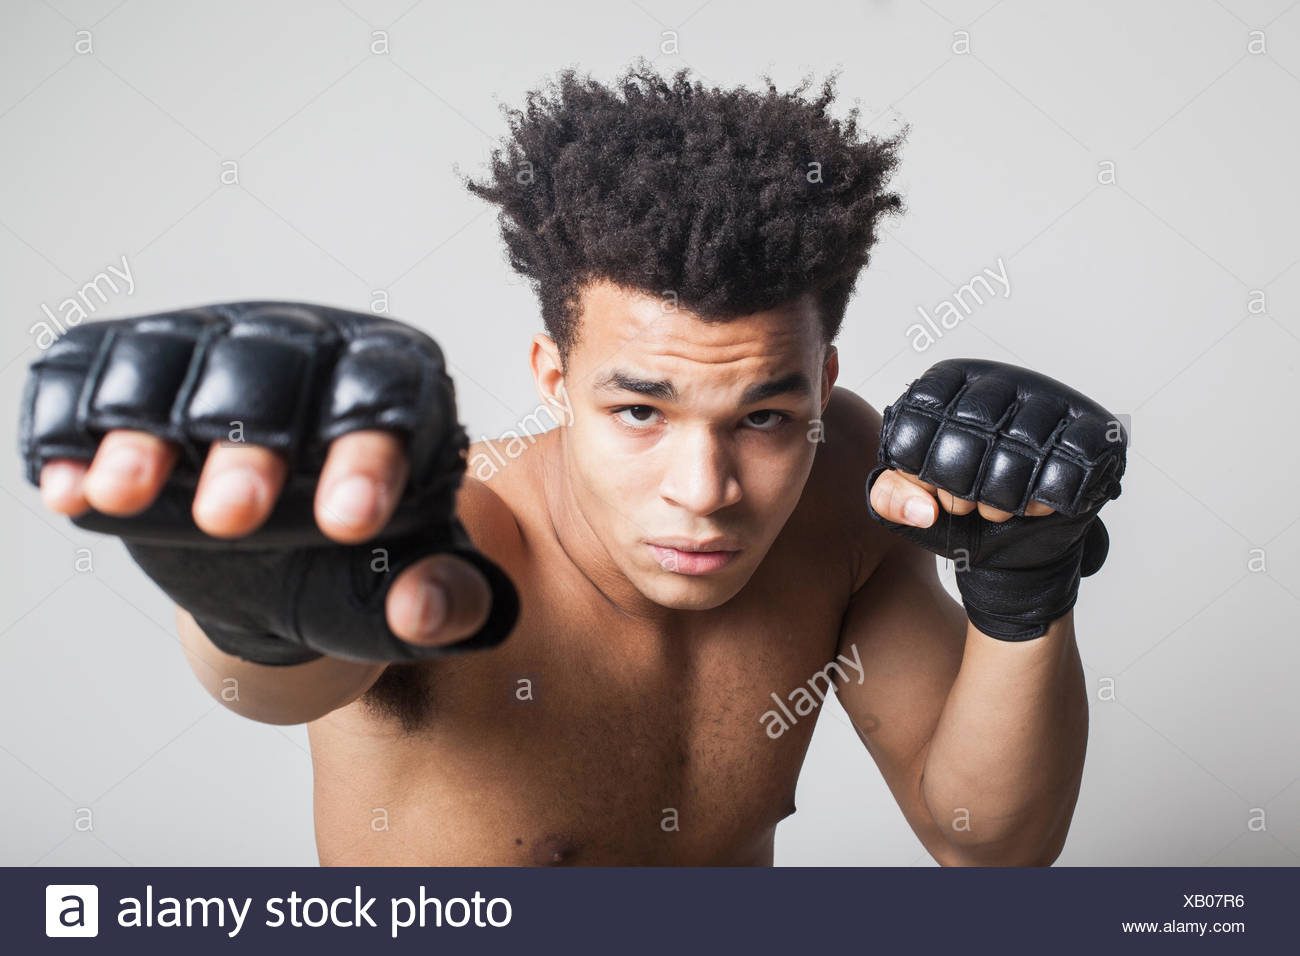 young man boxing - Stock Image